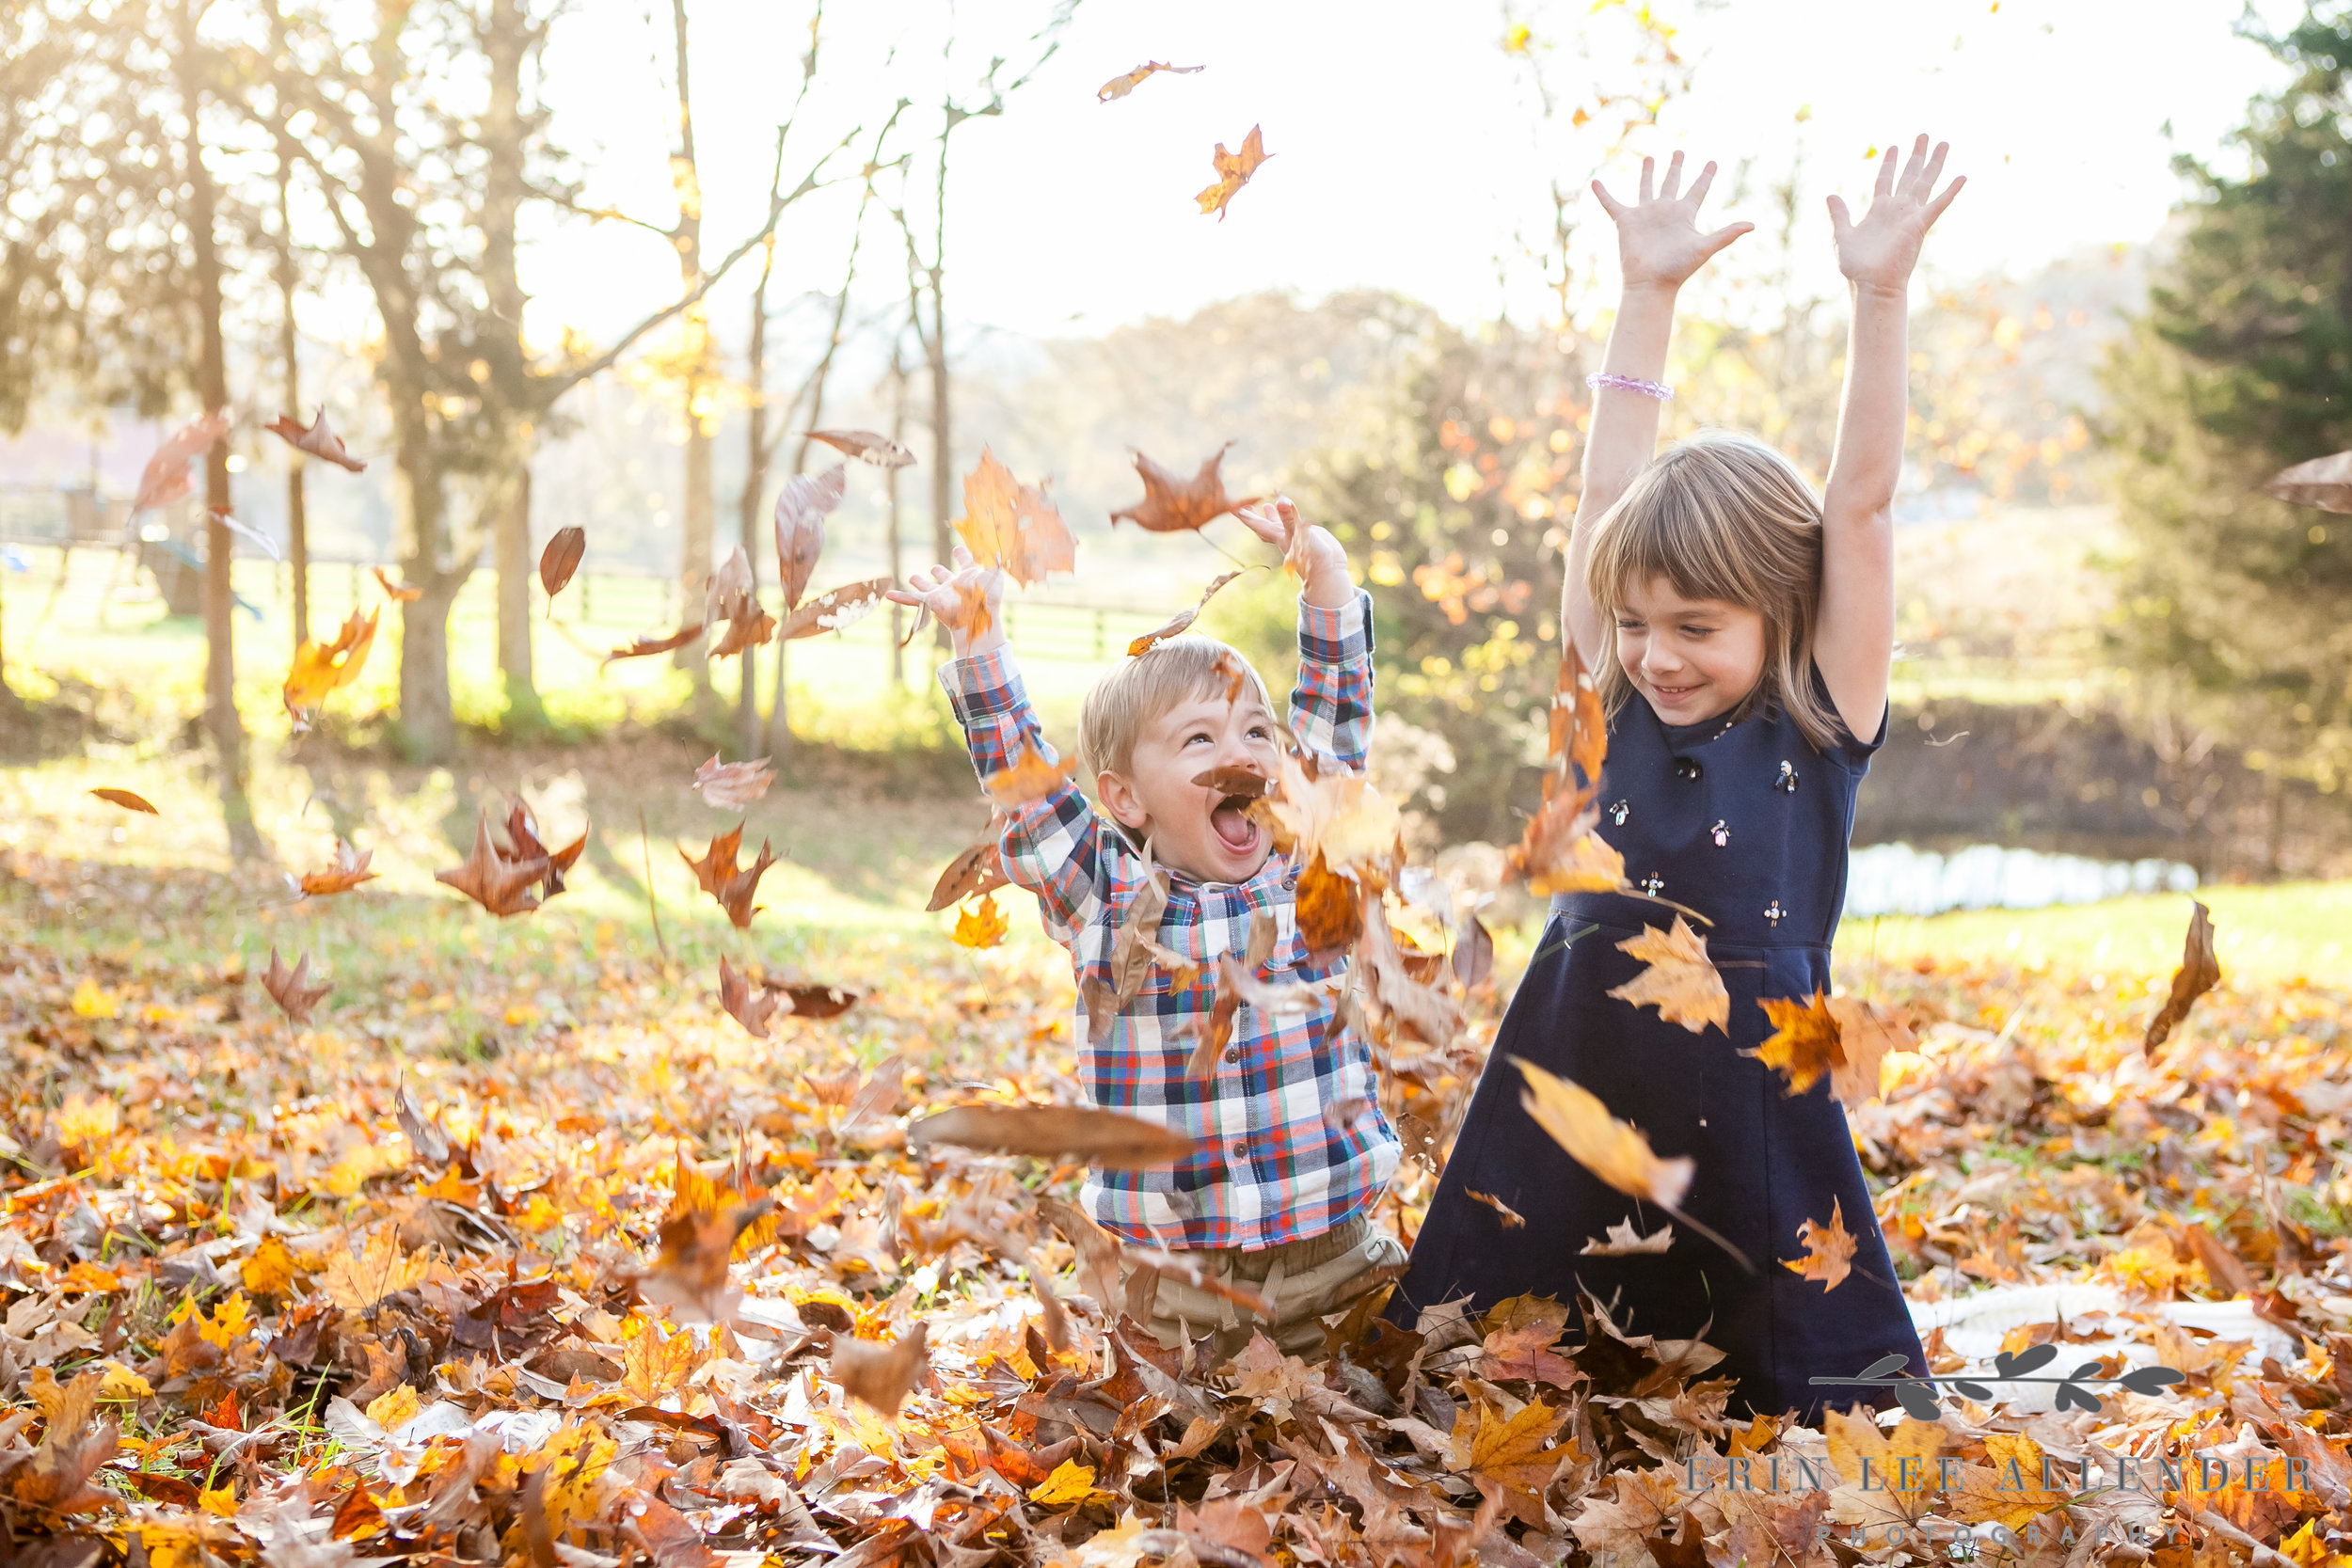 Children_Playing_In_the_leaves